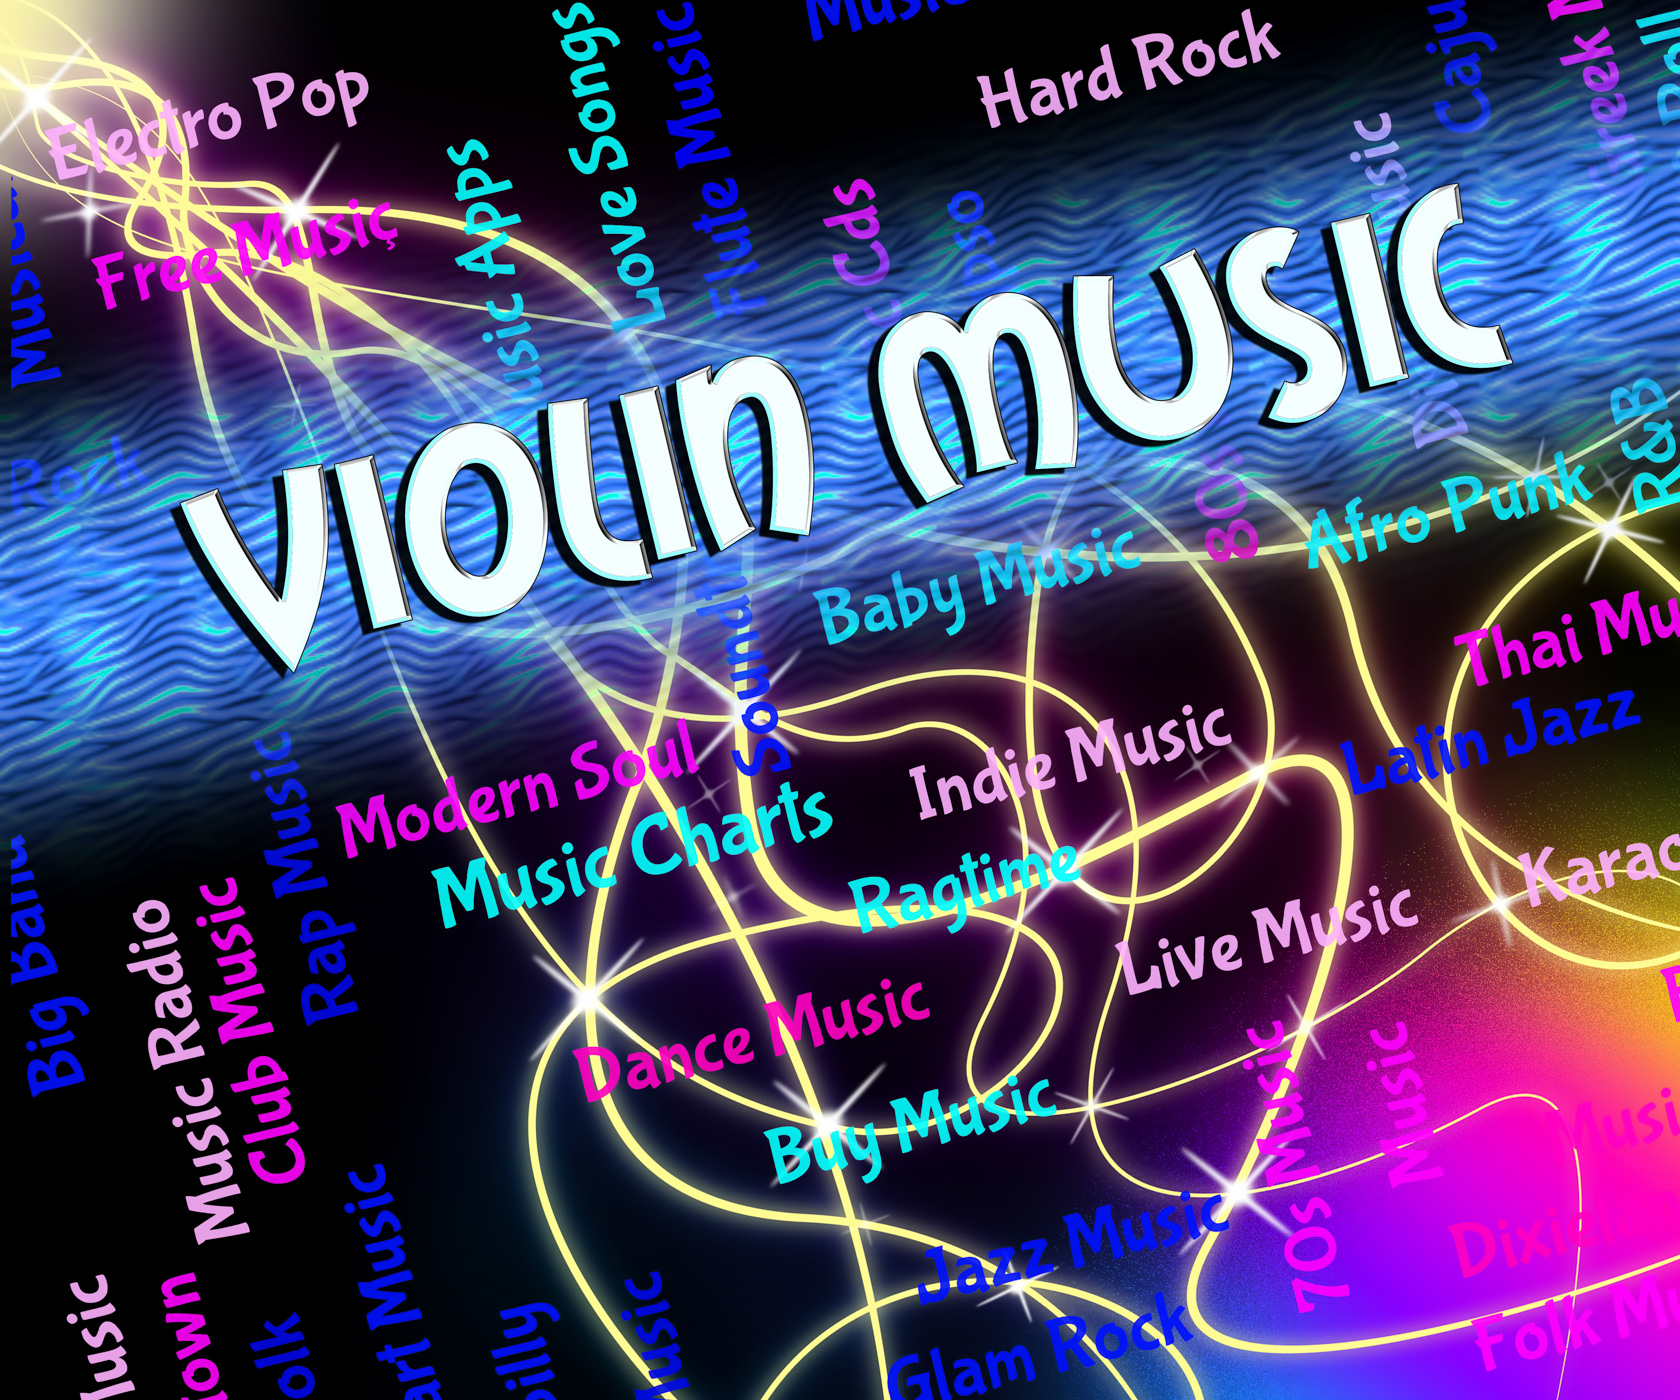 Violin music means sound track and audio photo